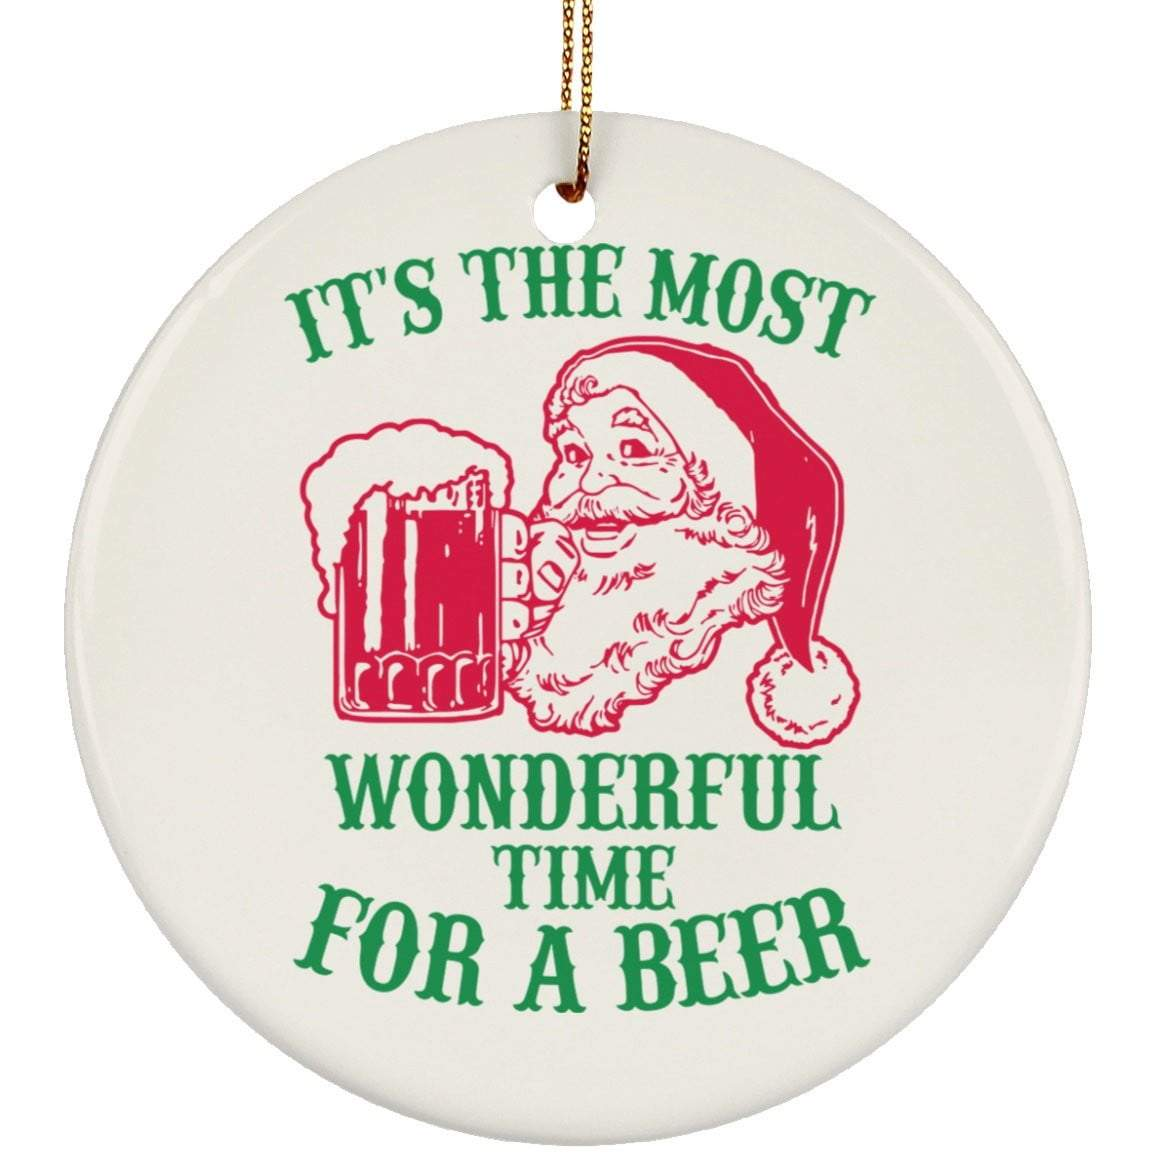 WONDERFUL TIME FOR BEER Christmas Ceramic Circle Ornament